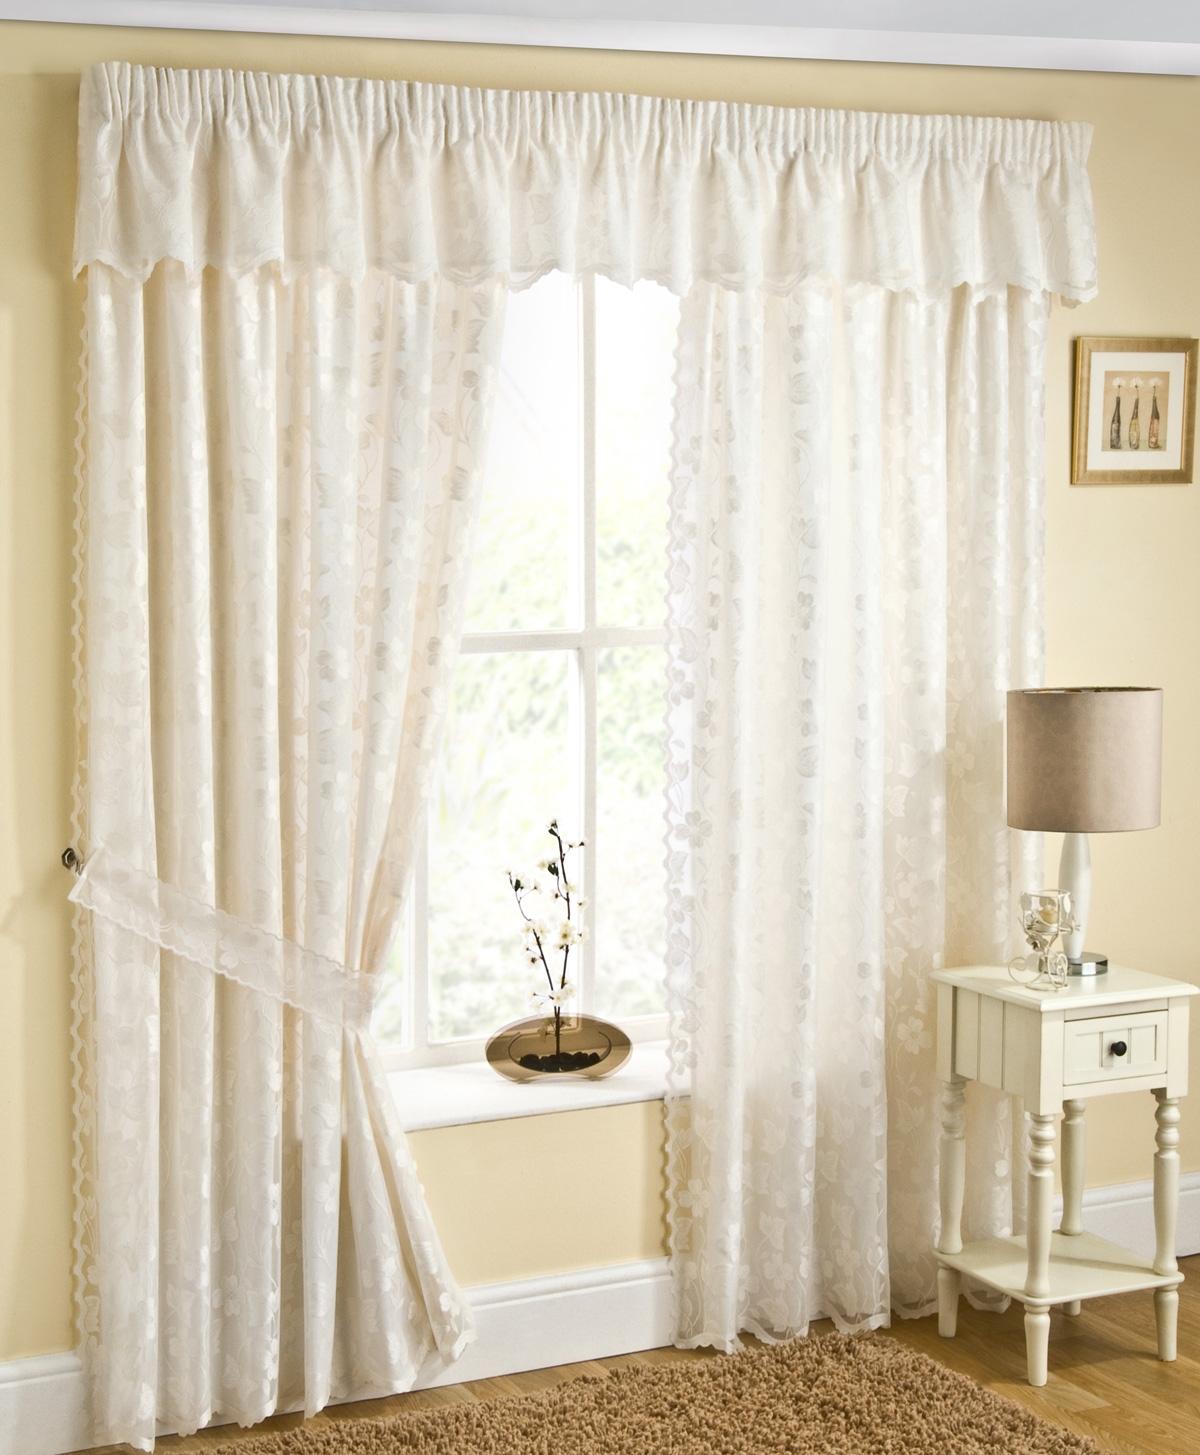 Top 30 Cheapest Lined Voile Curtains Uk Prices Best Deals On With Lined Cream Curtains (Image 15 of 15)